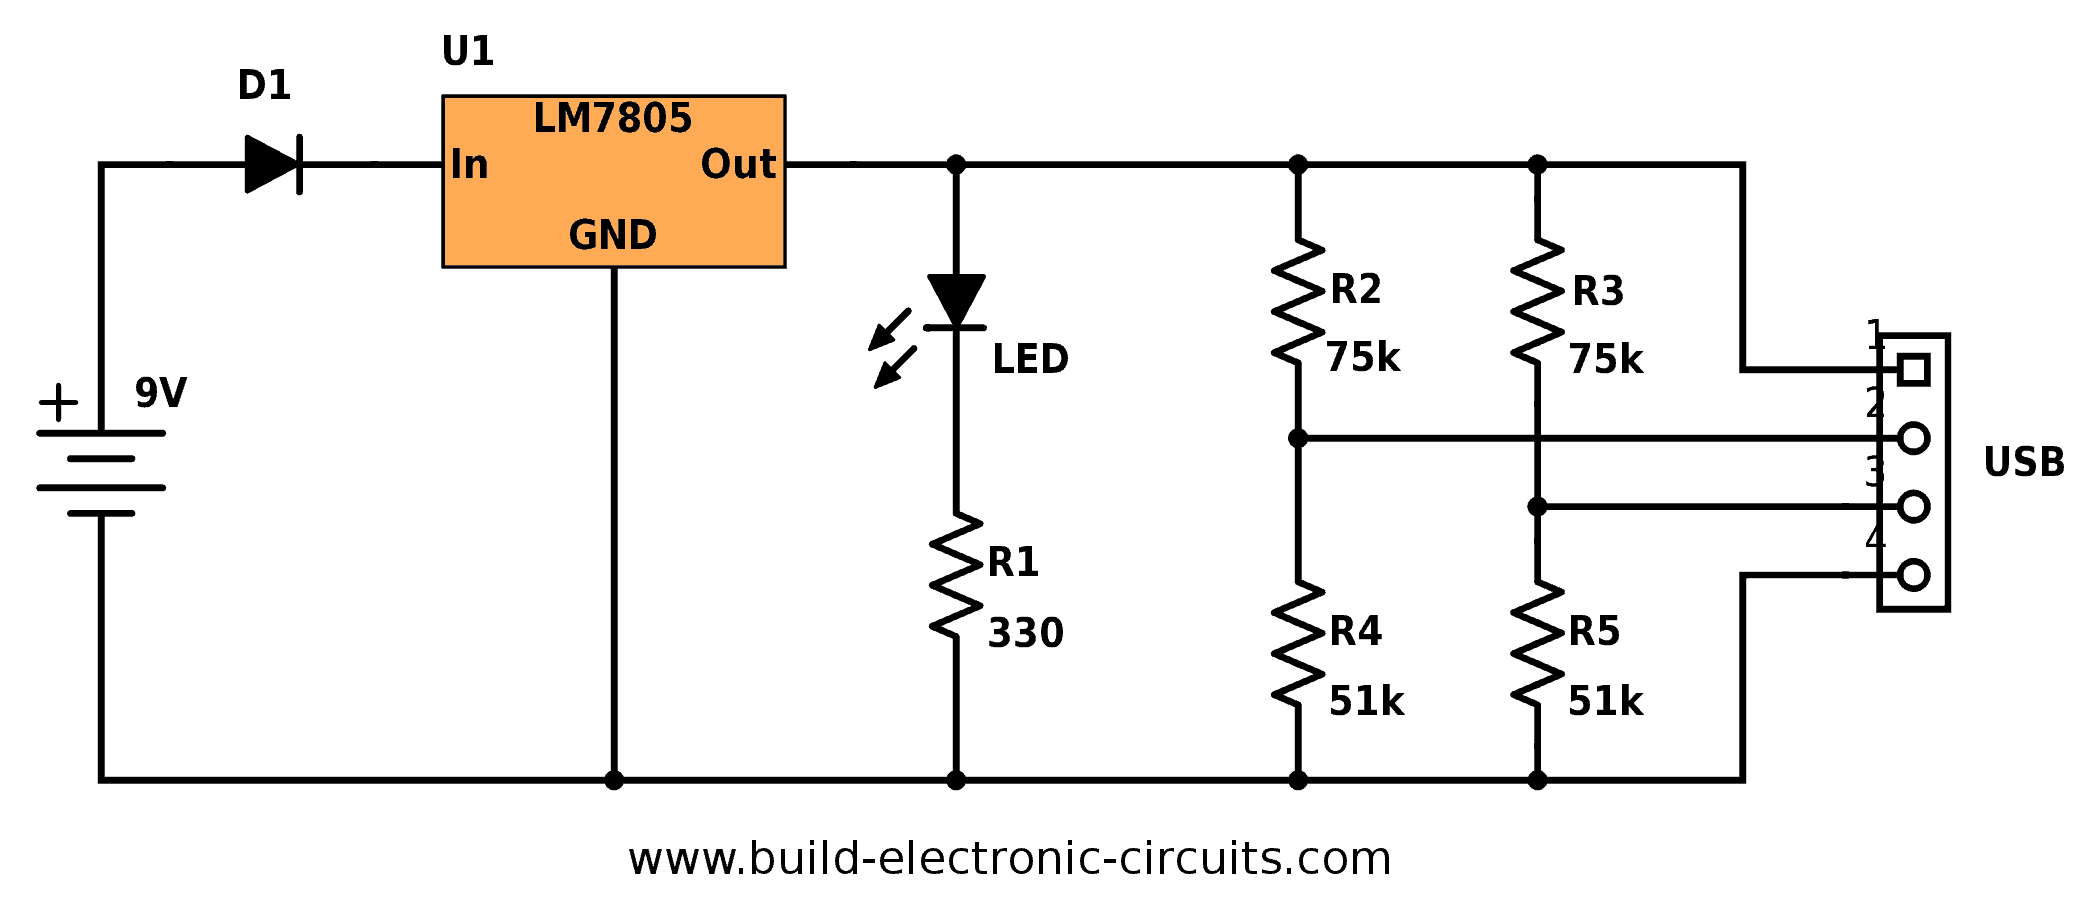 dld mini projects circuit diagram mobile home service entrance wiring portable usb charger build electronic circuits